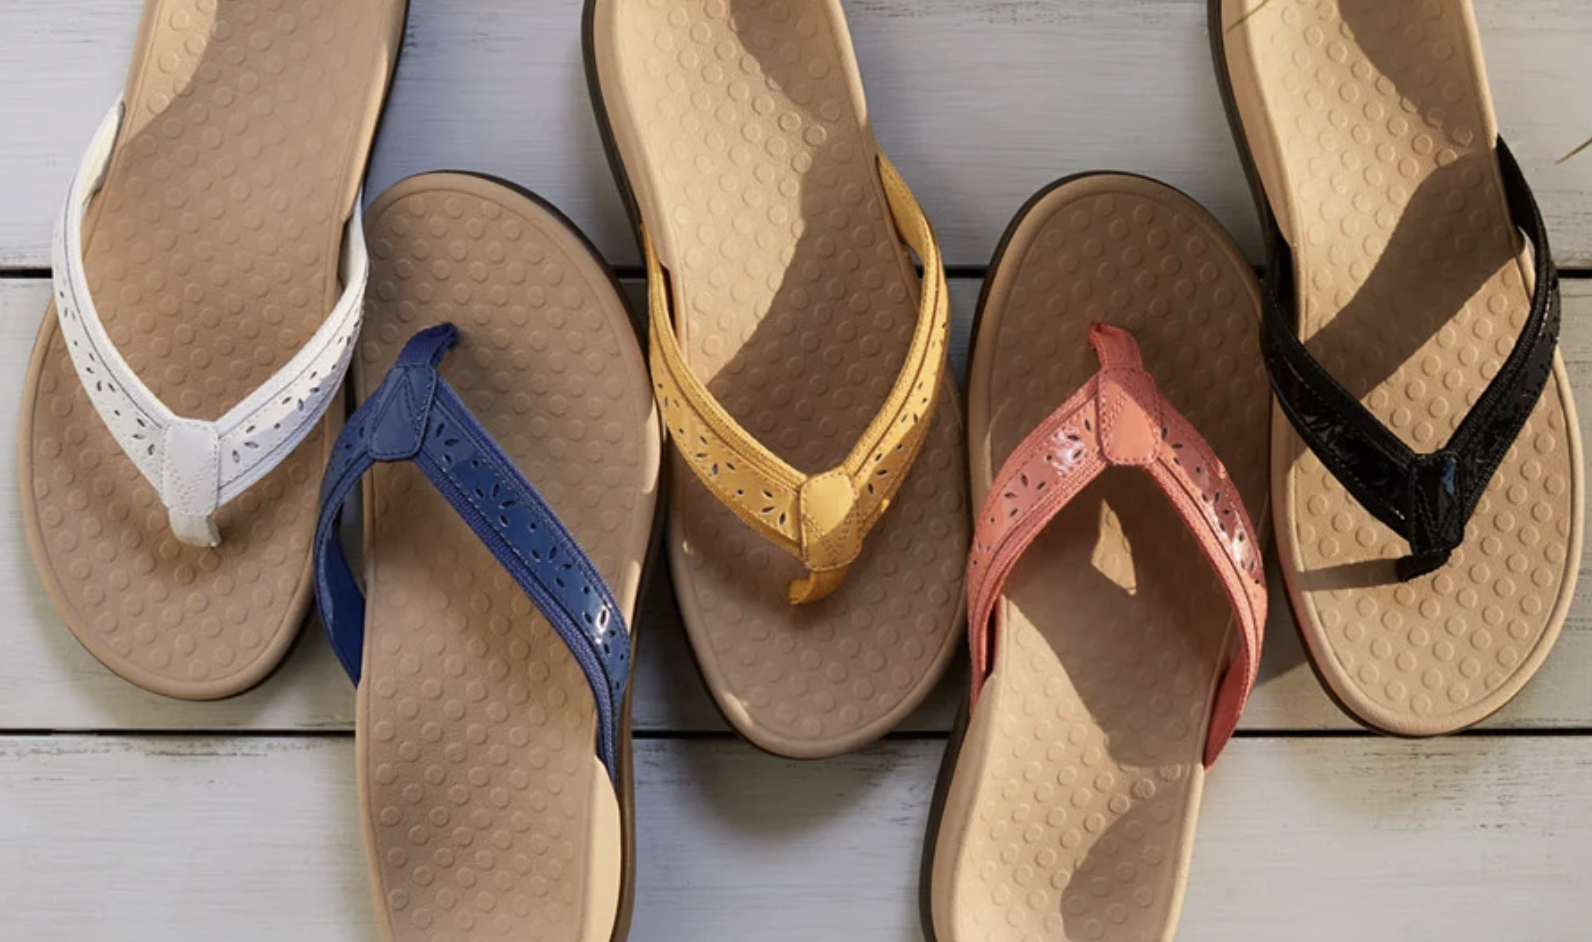 Finding Sandals That Are Good For Your